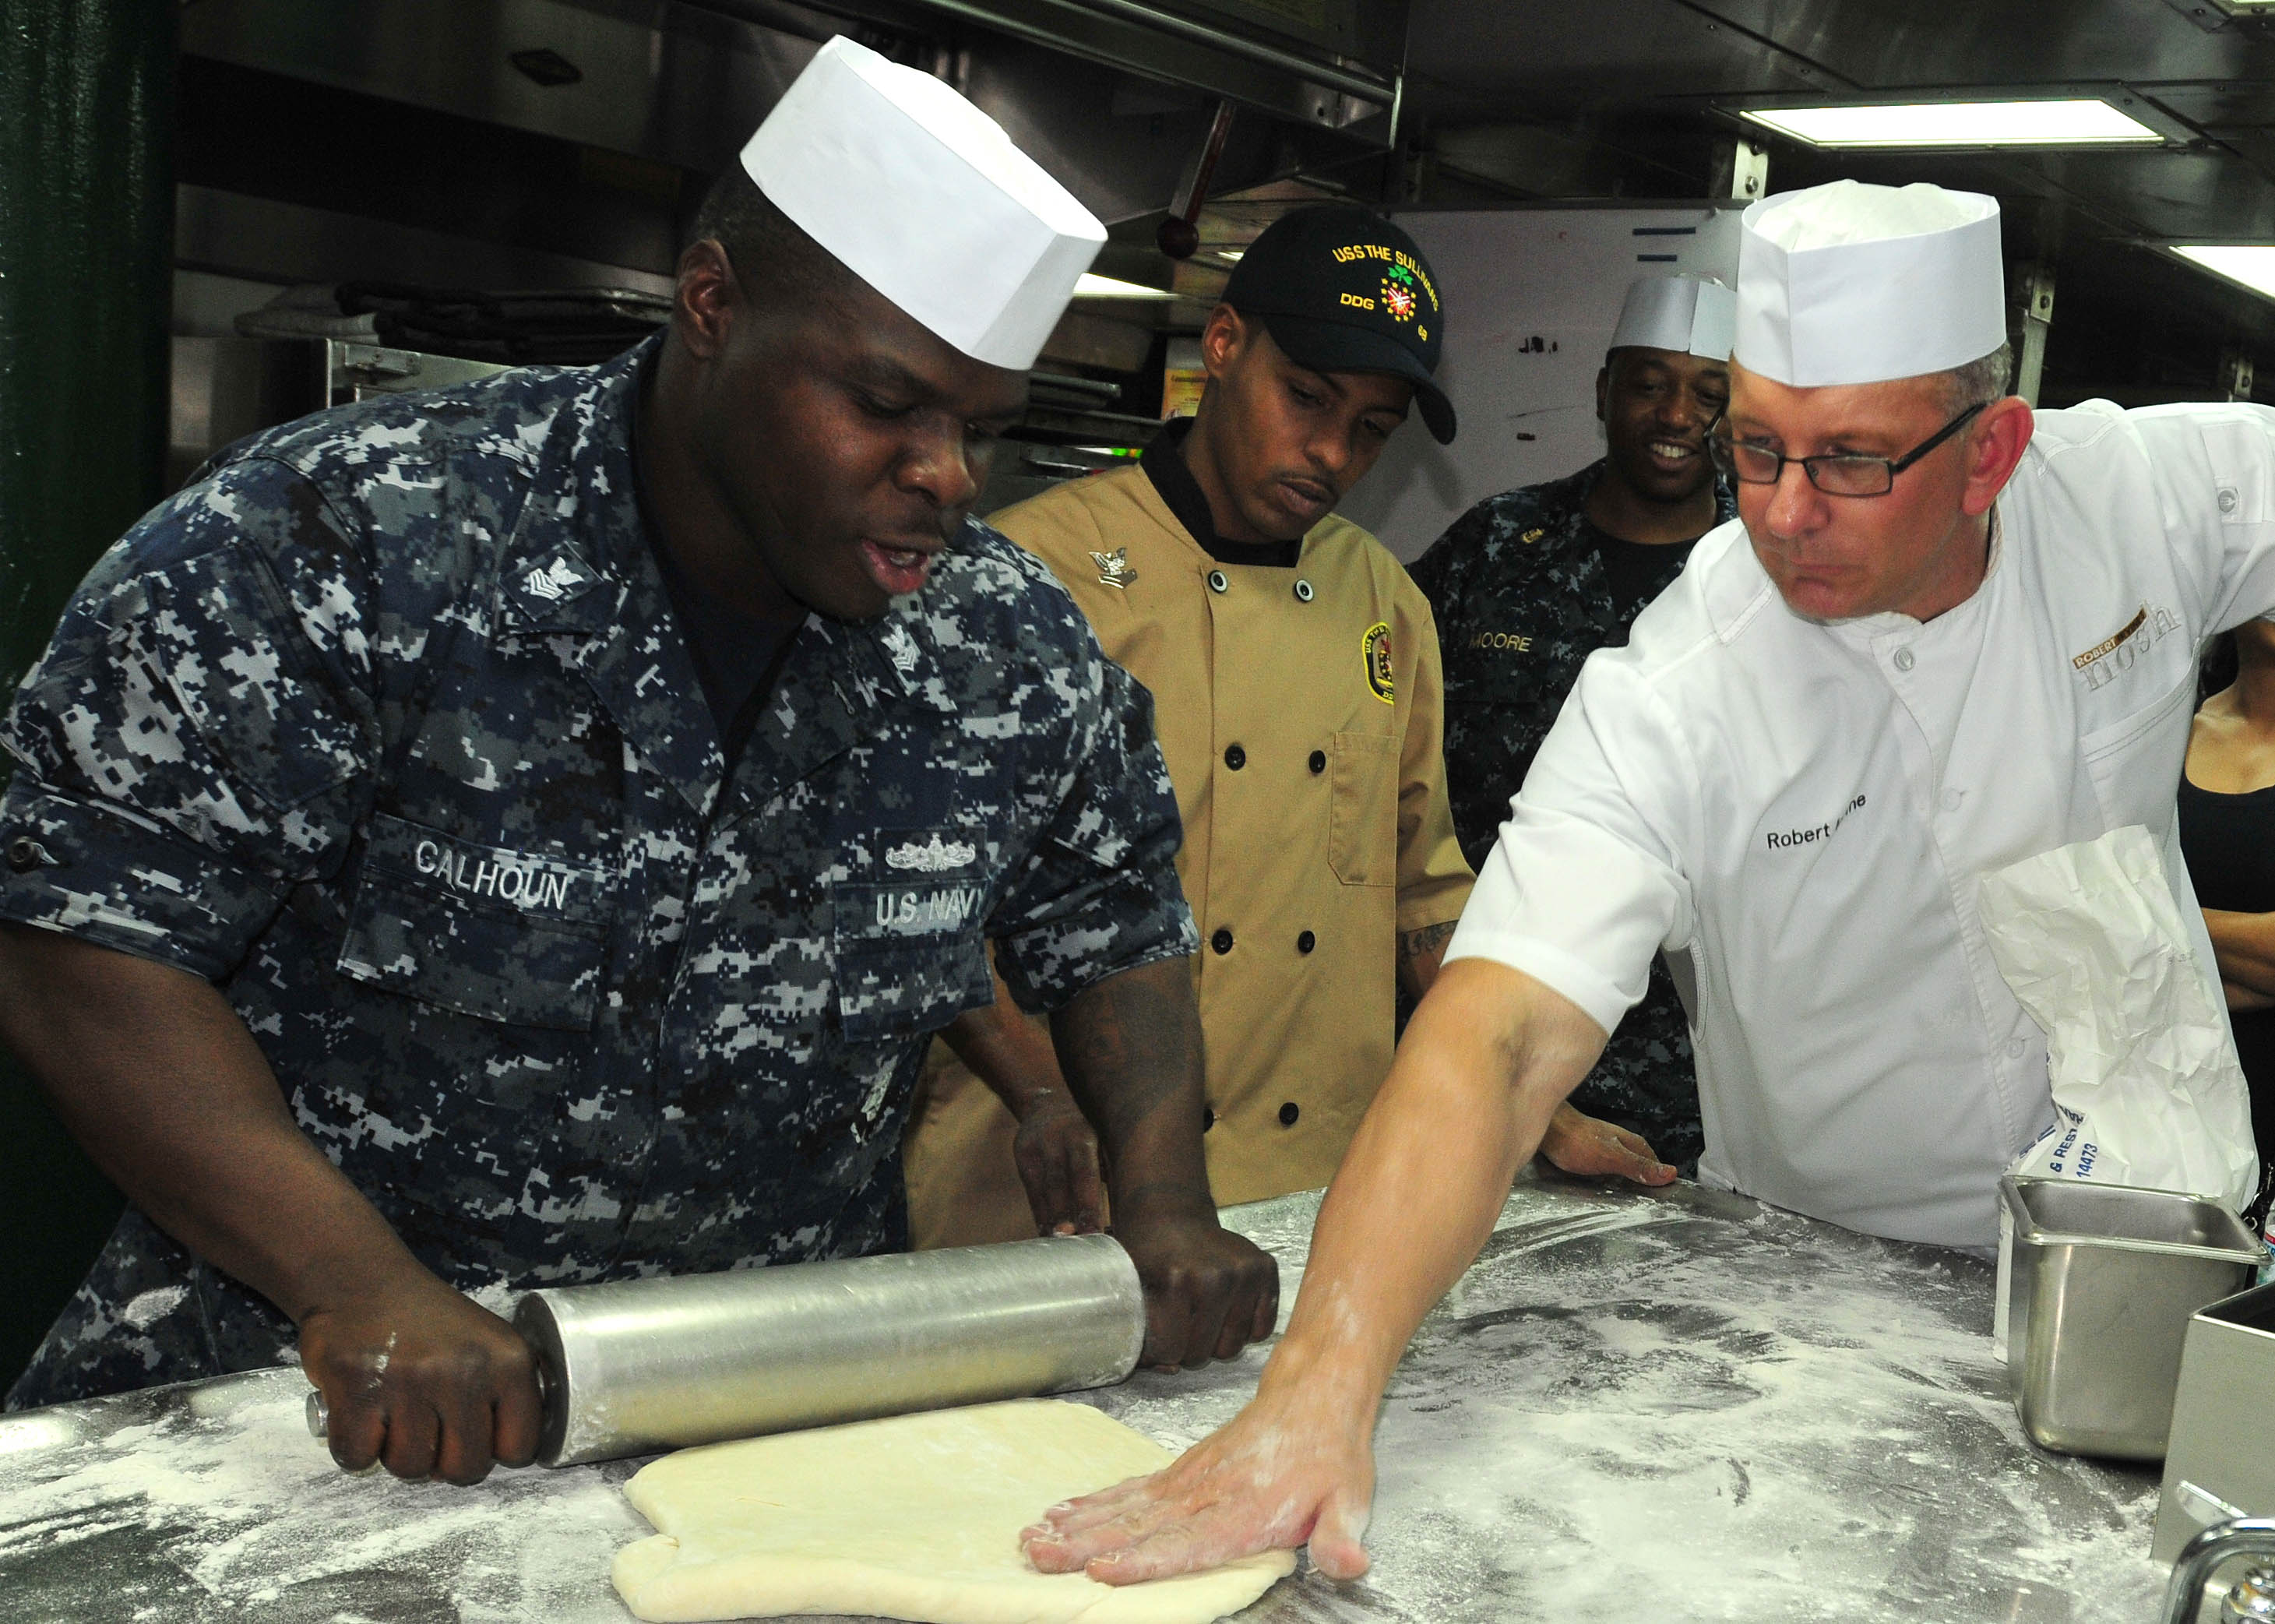 File:Flickr - Official U.S. Navy Imagery - Chef Robert Irvine ...